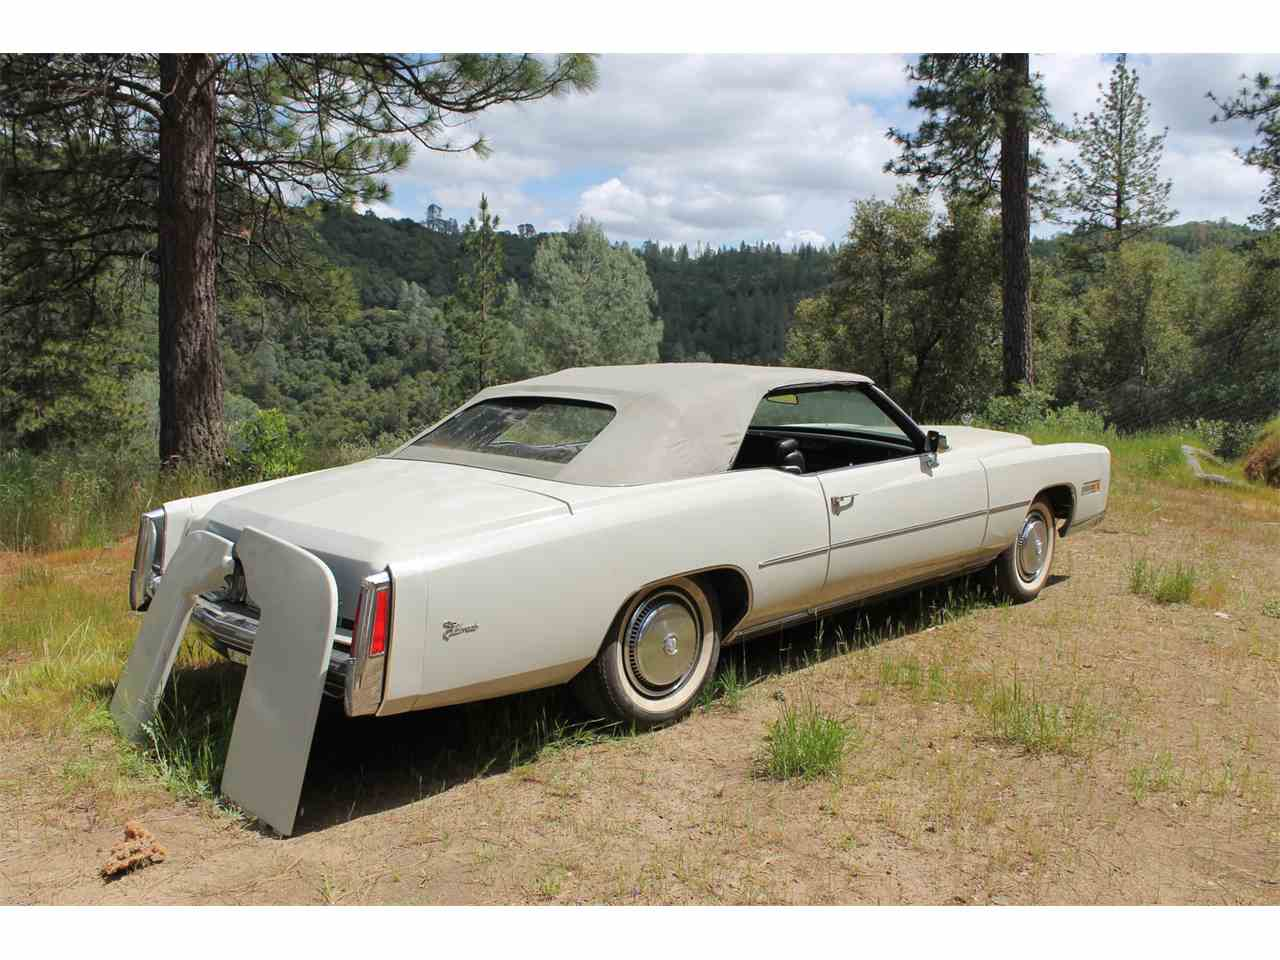 Large Picture of 1975 Cadillac Eldorado located in Sutter Creek California - $10,000.00 - I5ZP